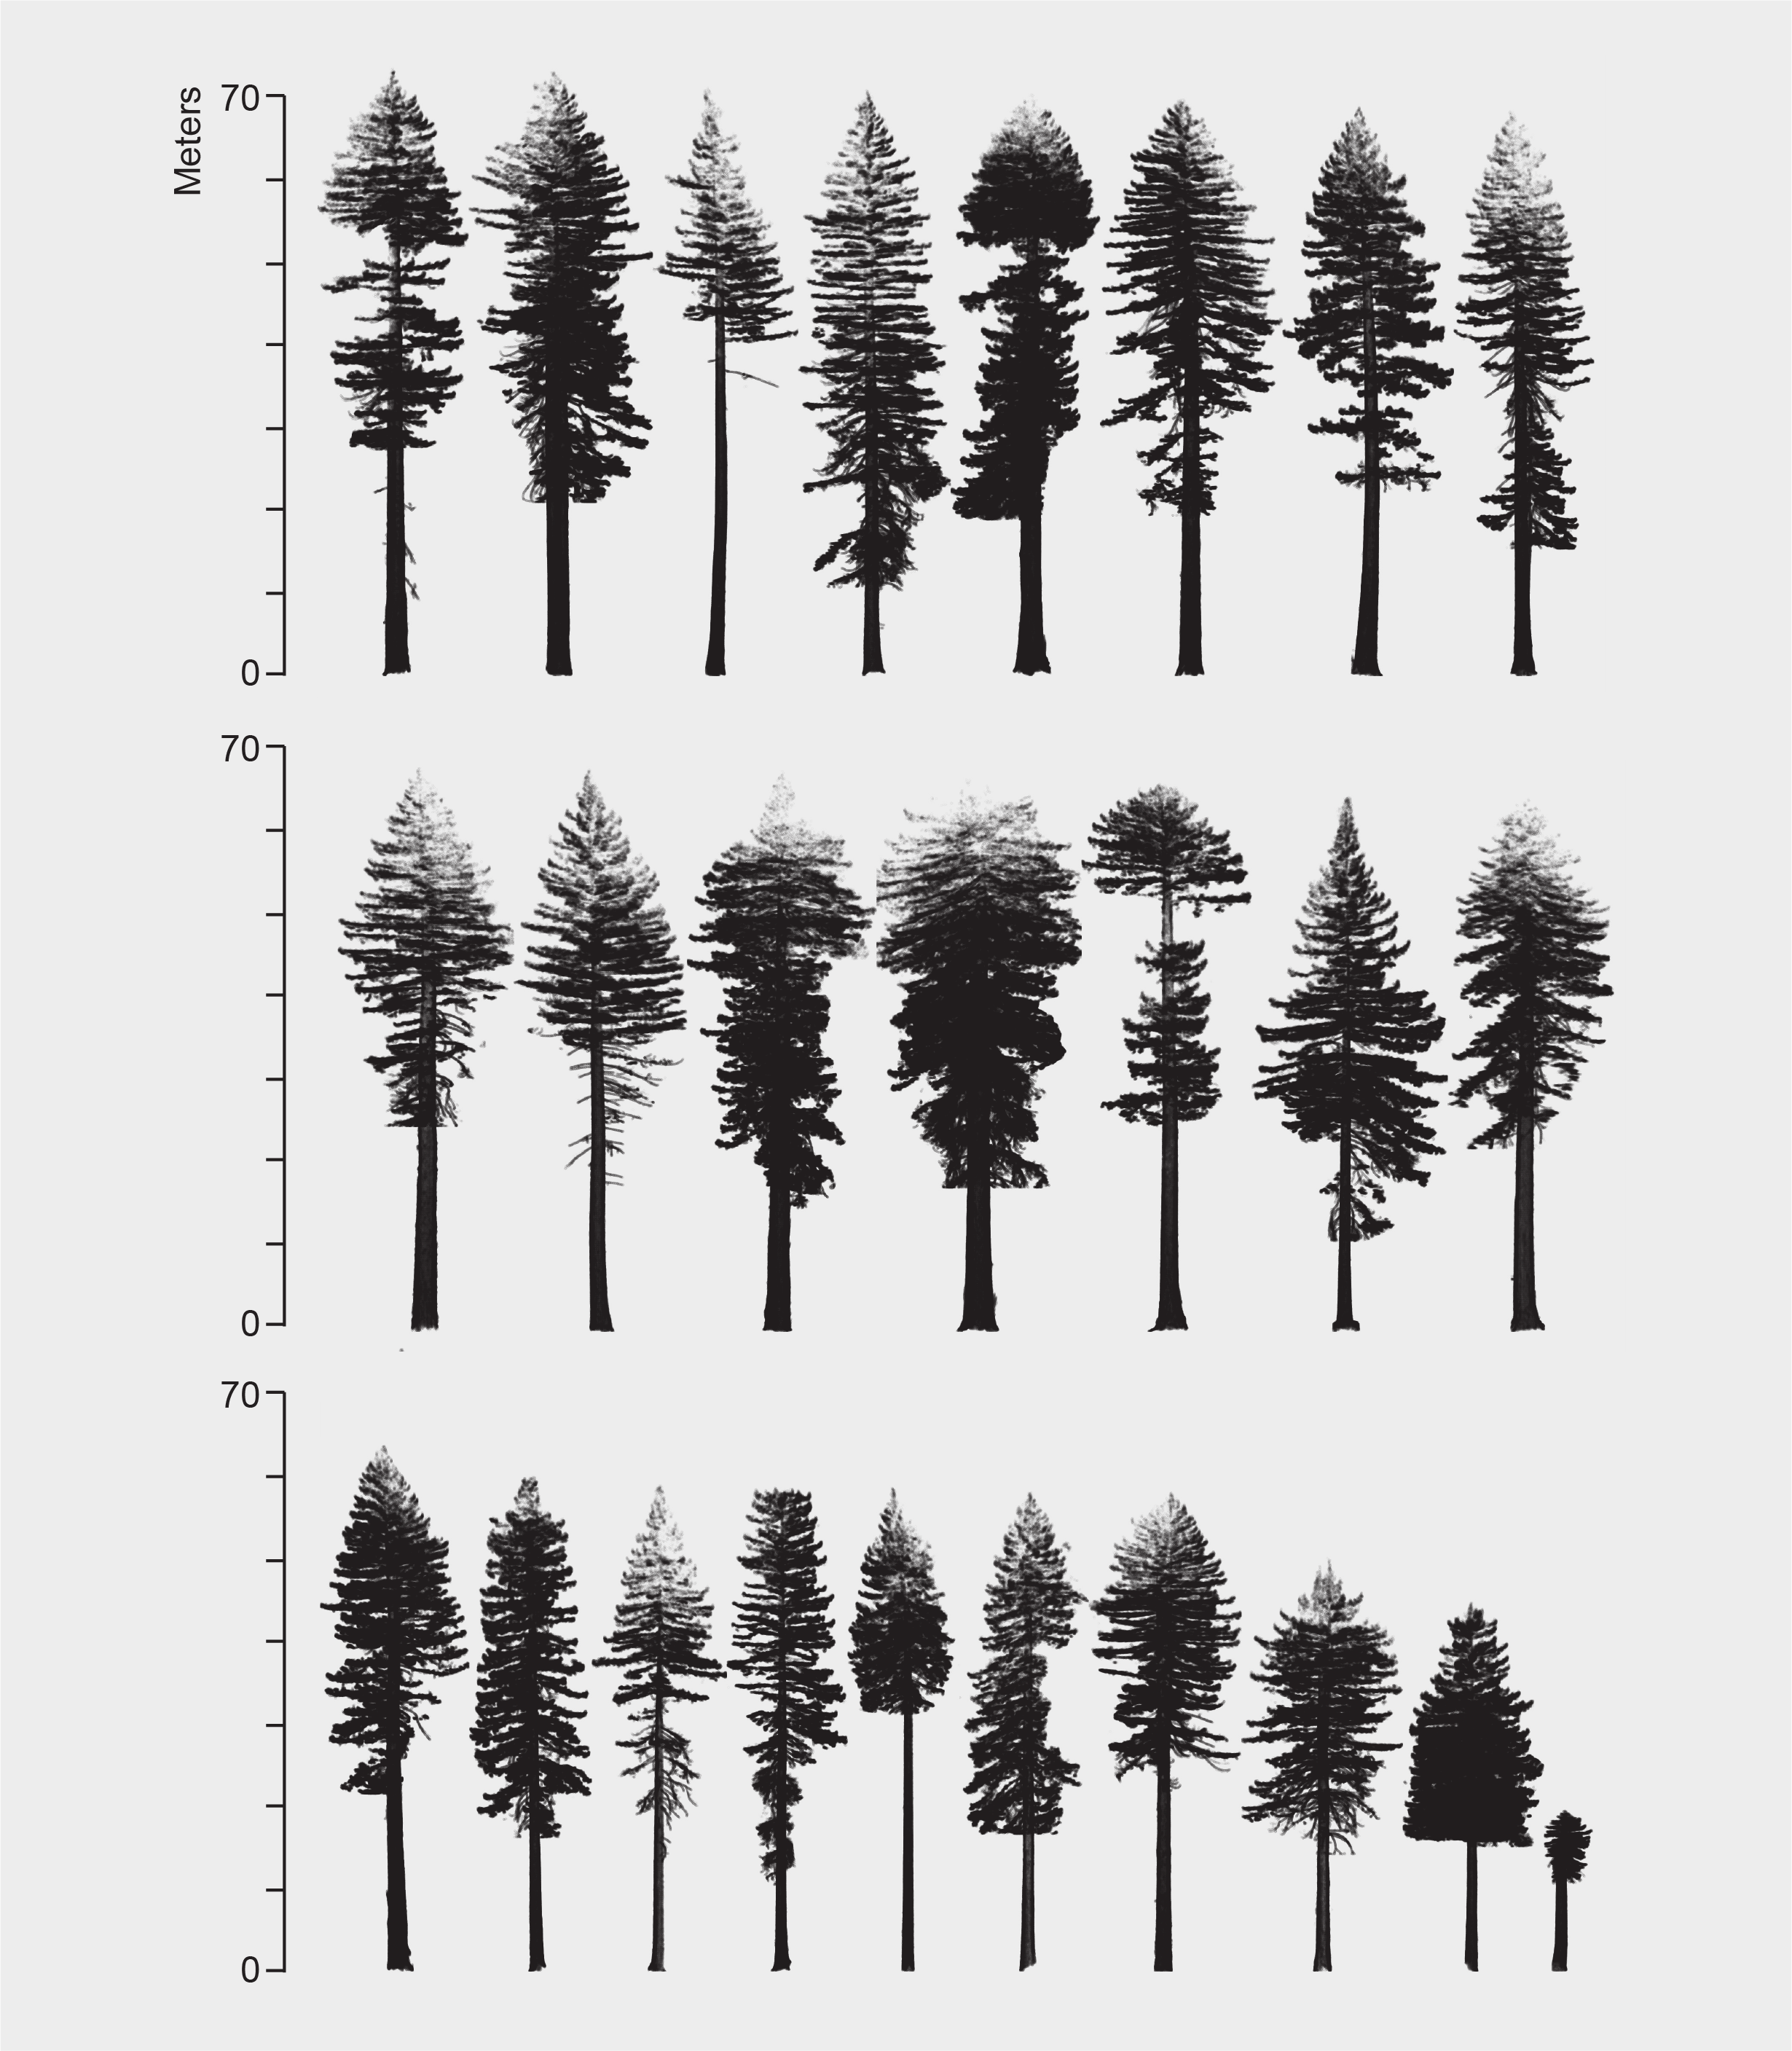 3D Measurements of Large Redwood Trees for Biomass and Structure